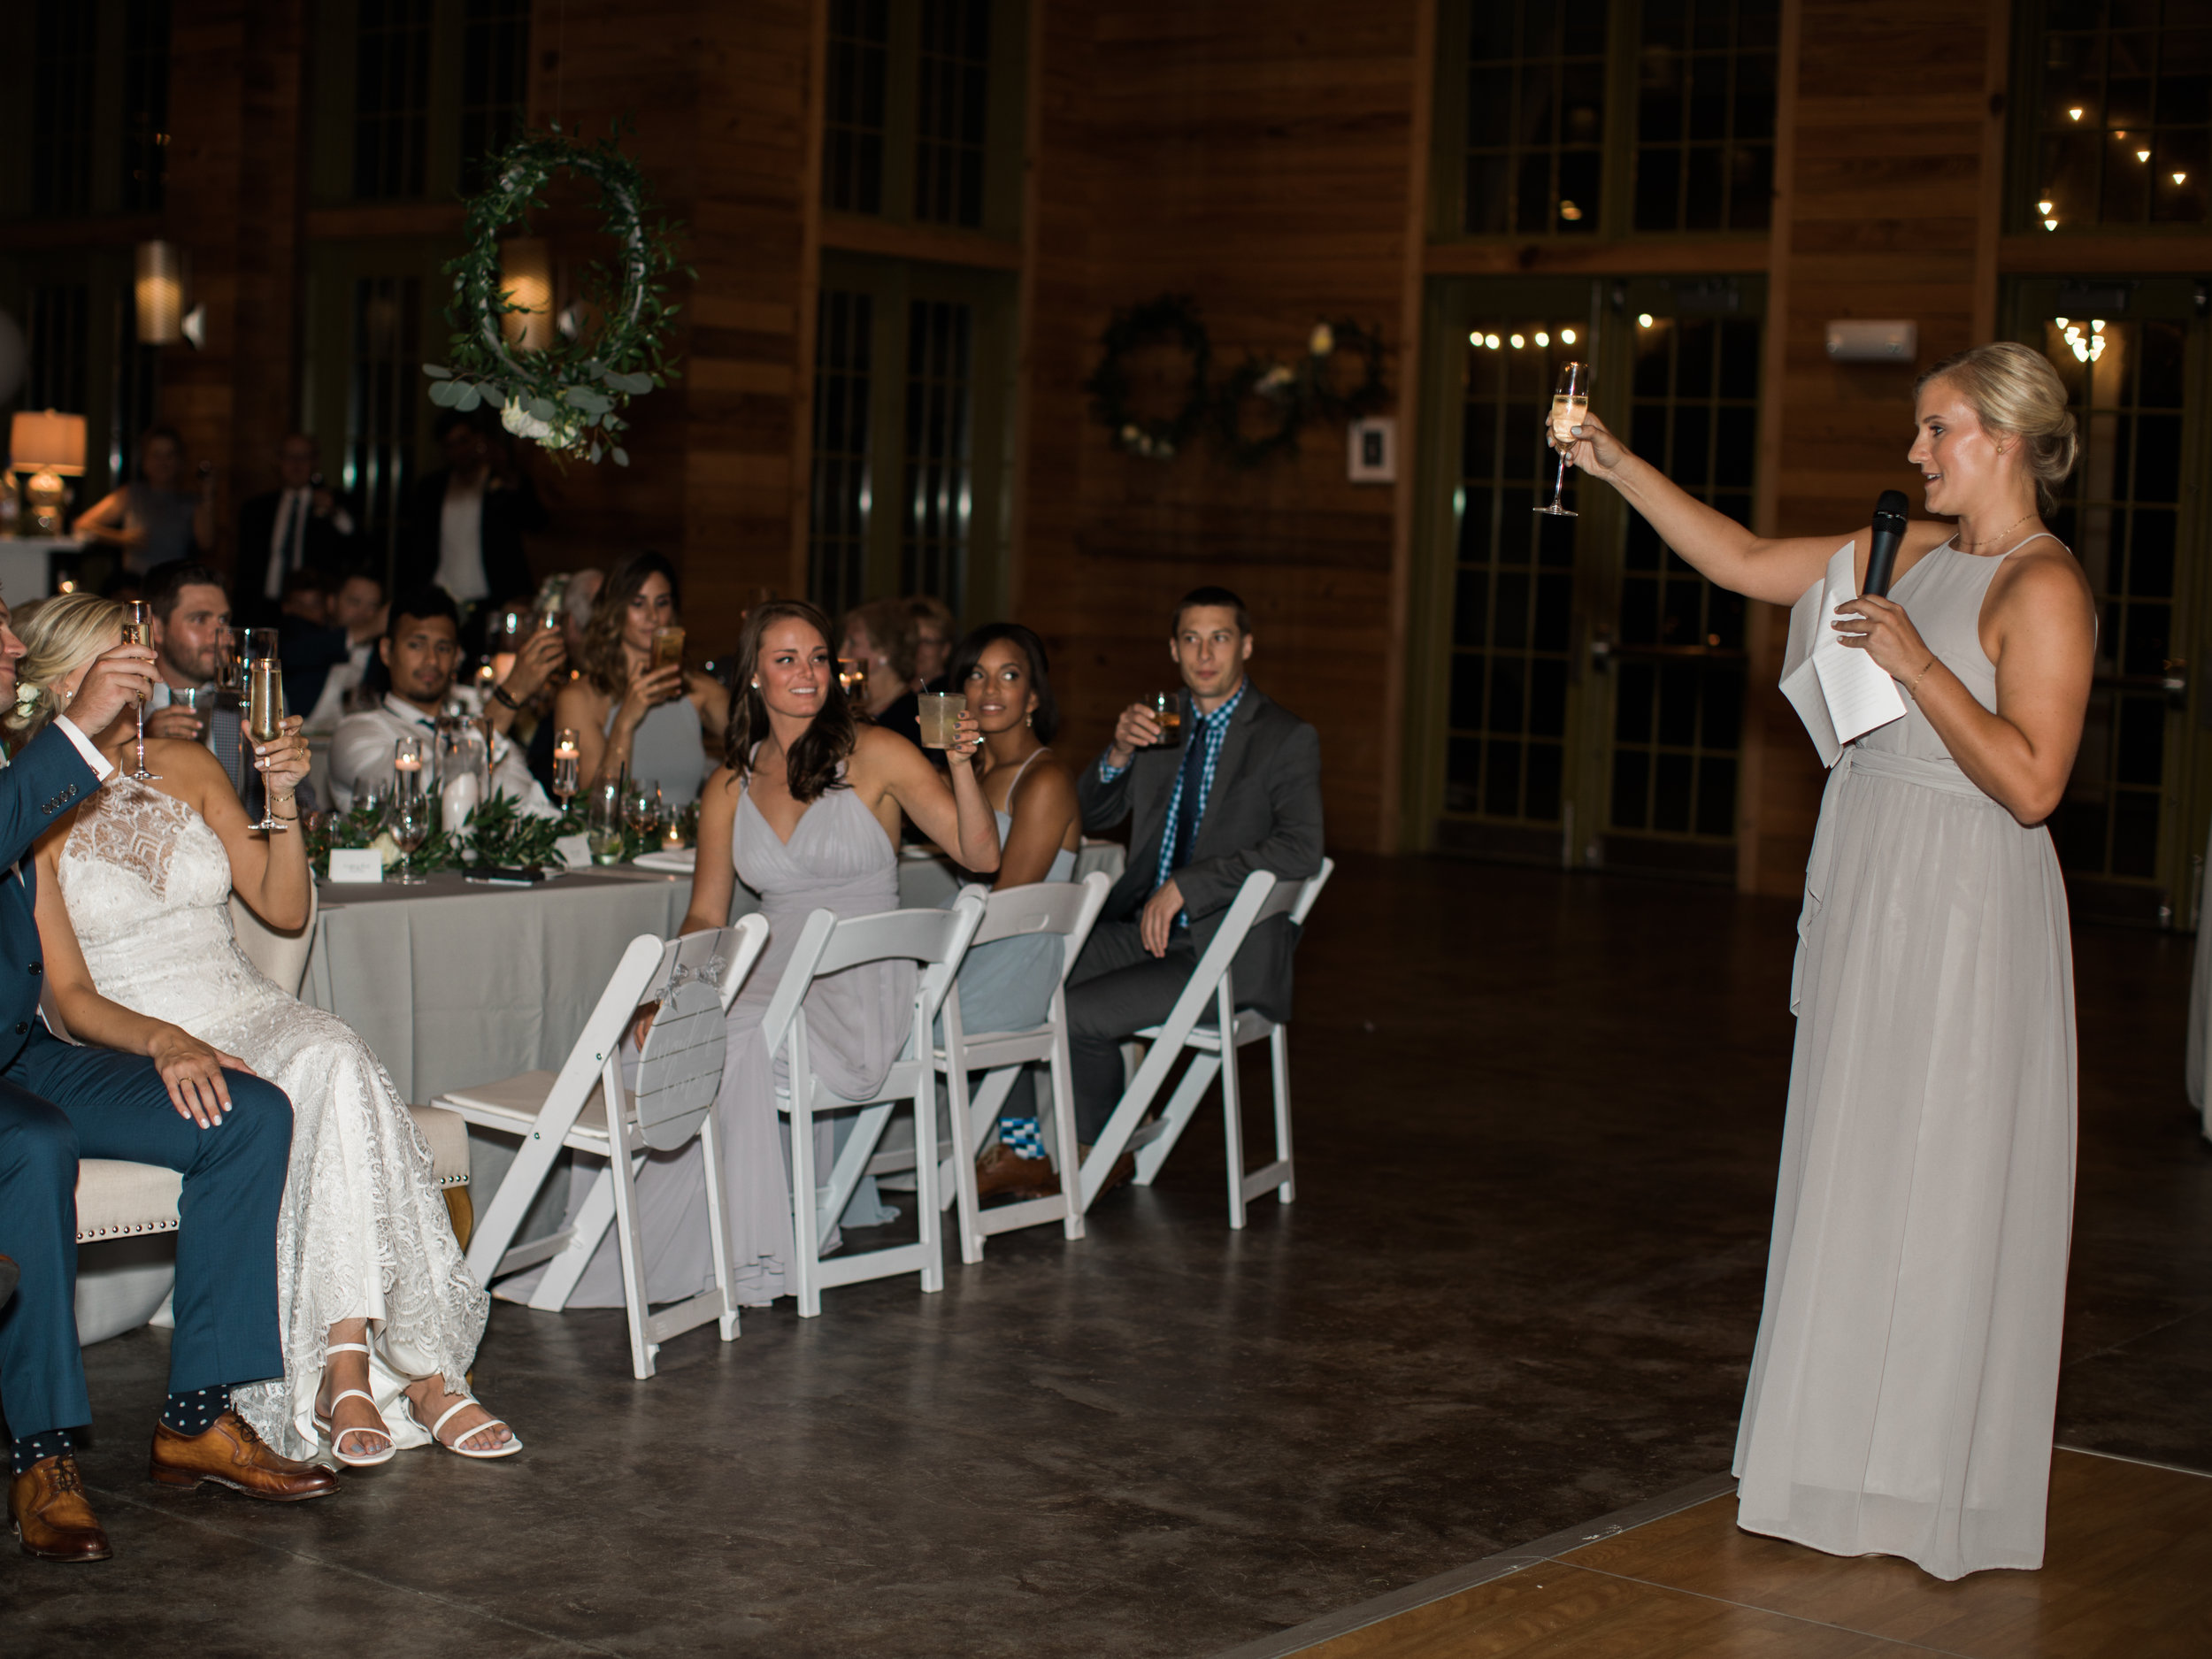 And to no one's surprise, my sister crushed her toast. Best Maid of Honor in the game.